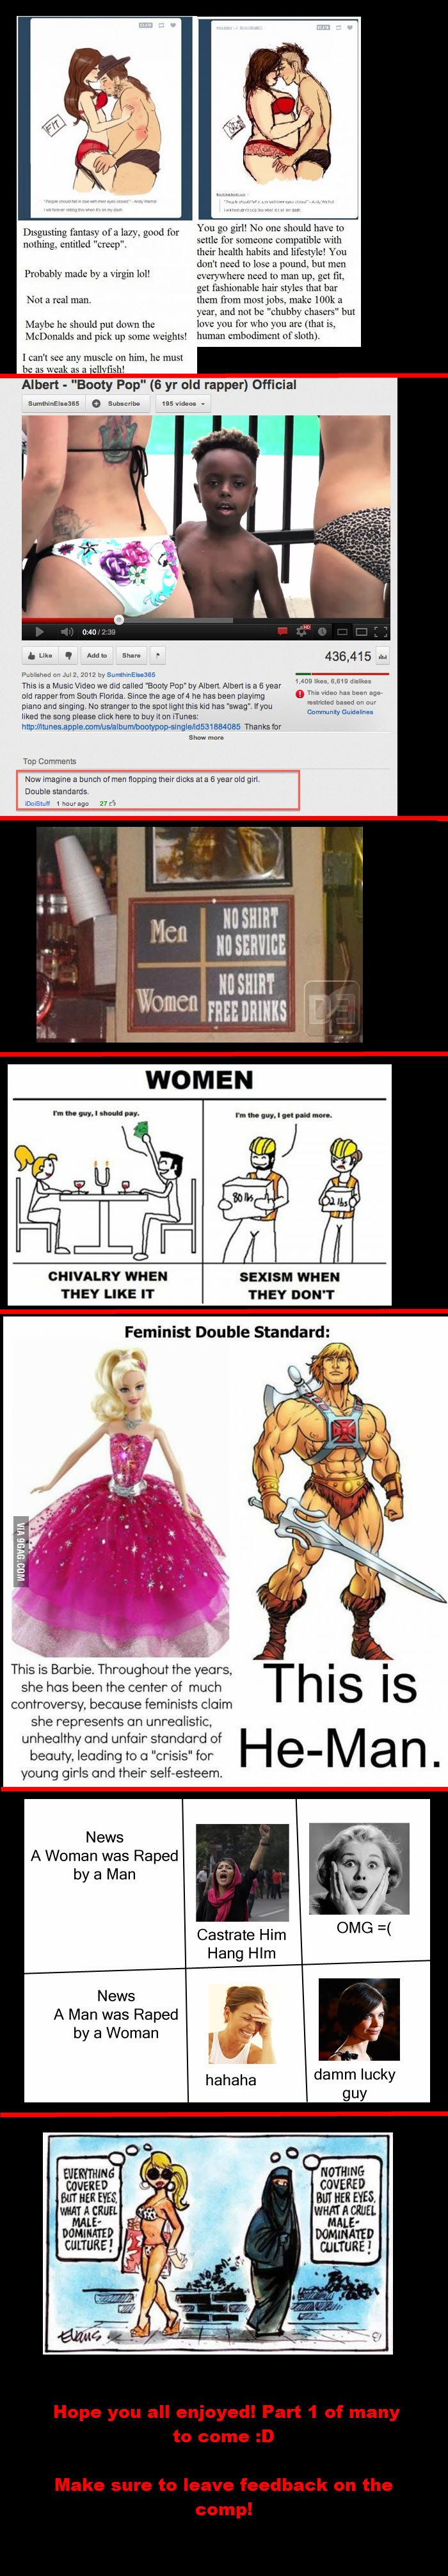 Double Standards Click for more Funny Pictures --> http://www.funnypicshub.com